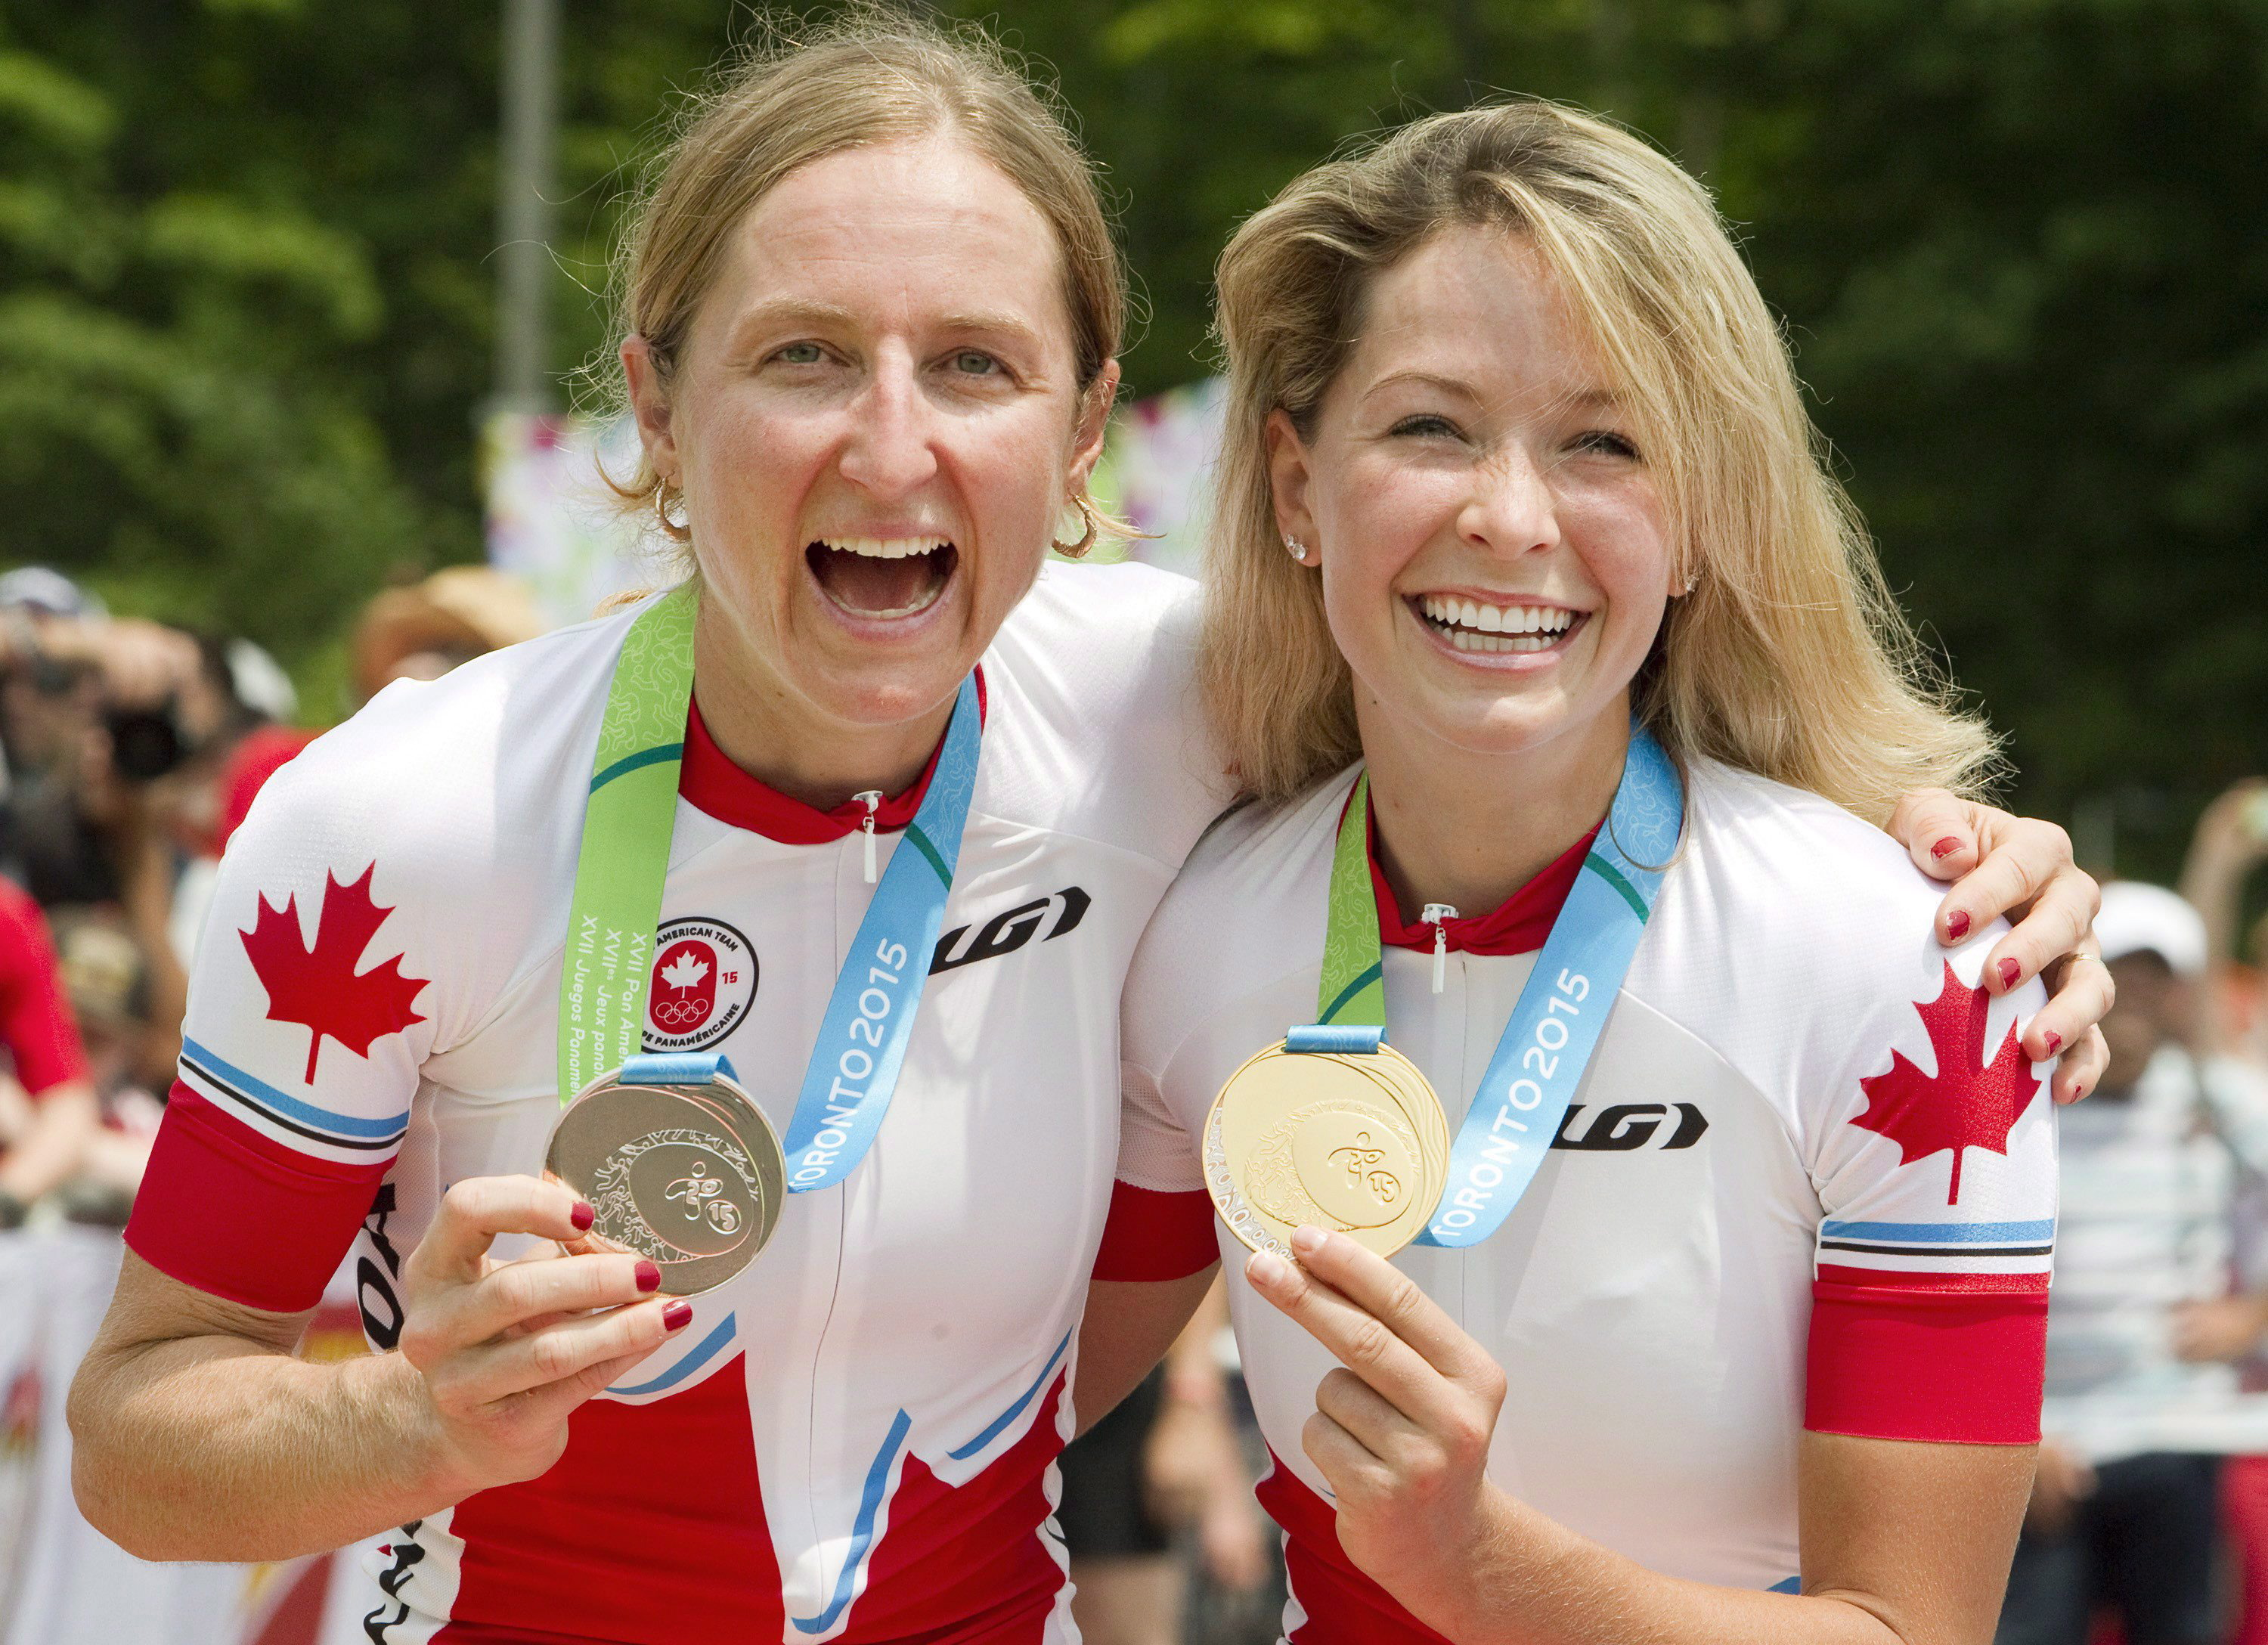 Canadians Catharine Pendrel, right, and Emily Batty with their silver and gold medals at the Hardwood Mountain Bike Park in Oro-Medonte, Ont., where they finished second and first, respectively in the women's mountain bike event at the Toronto 2015 Pan Am Games on Sunday, July 12, 2015. THE CANADIAN PRESS/Fred Thornhill